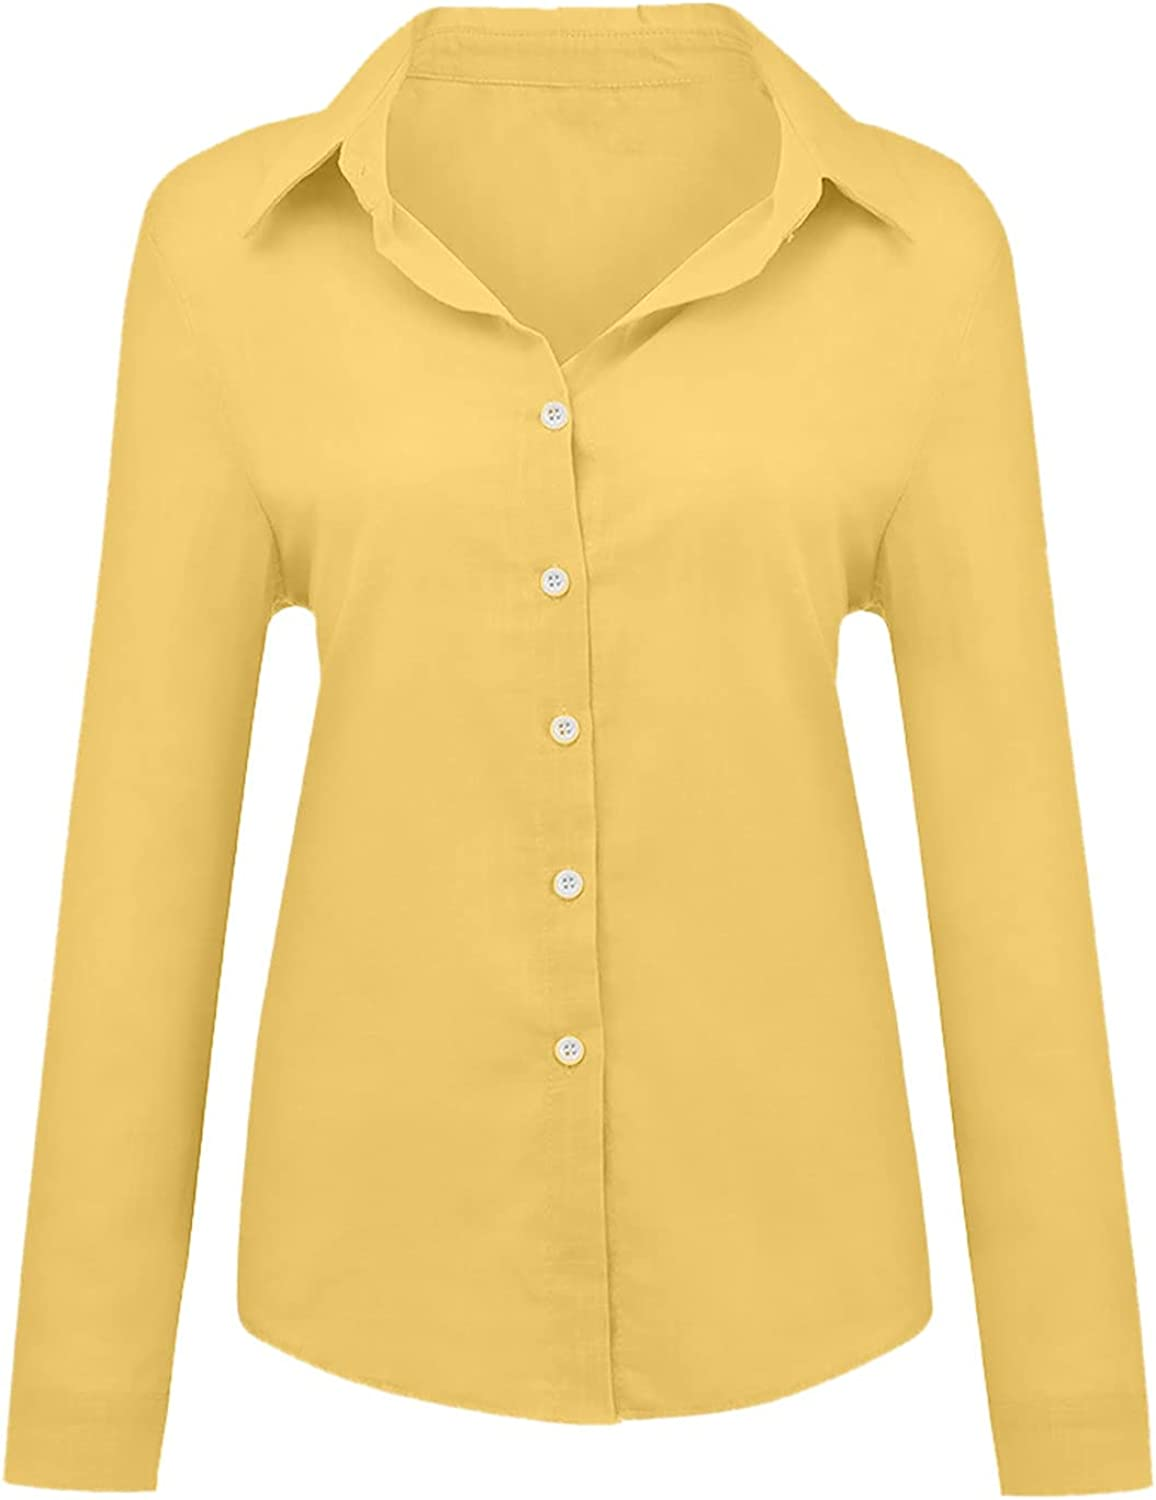 Women's 3/4 Sleeve Shirts Cotton Linen Tops Loose Fit Solid Color Button Casual Shirt Comfortable Tunic Blouses